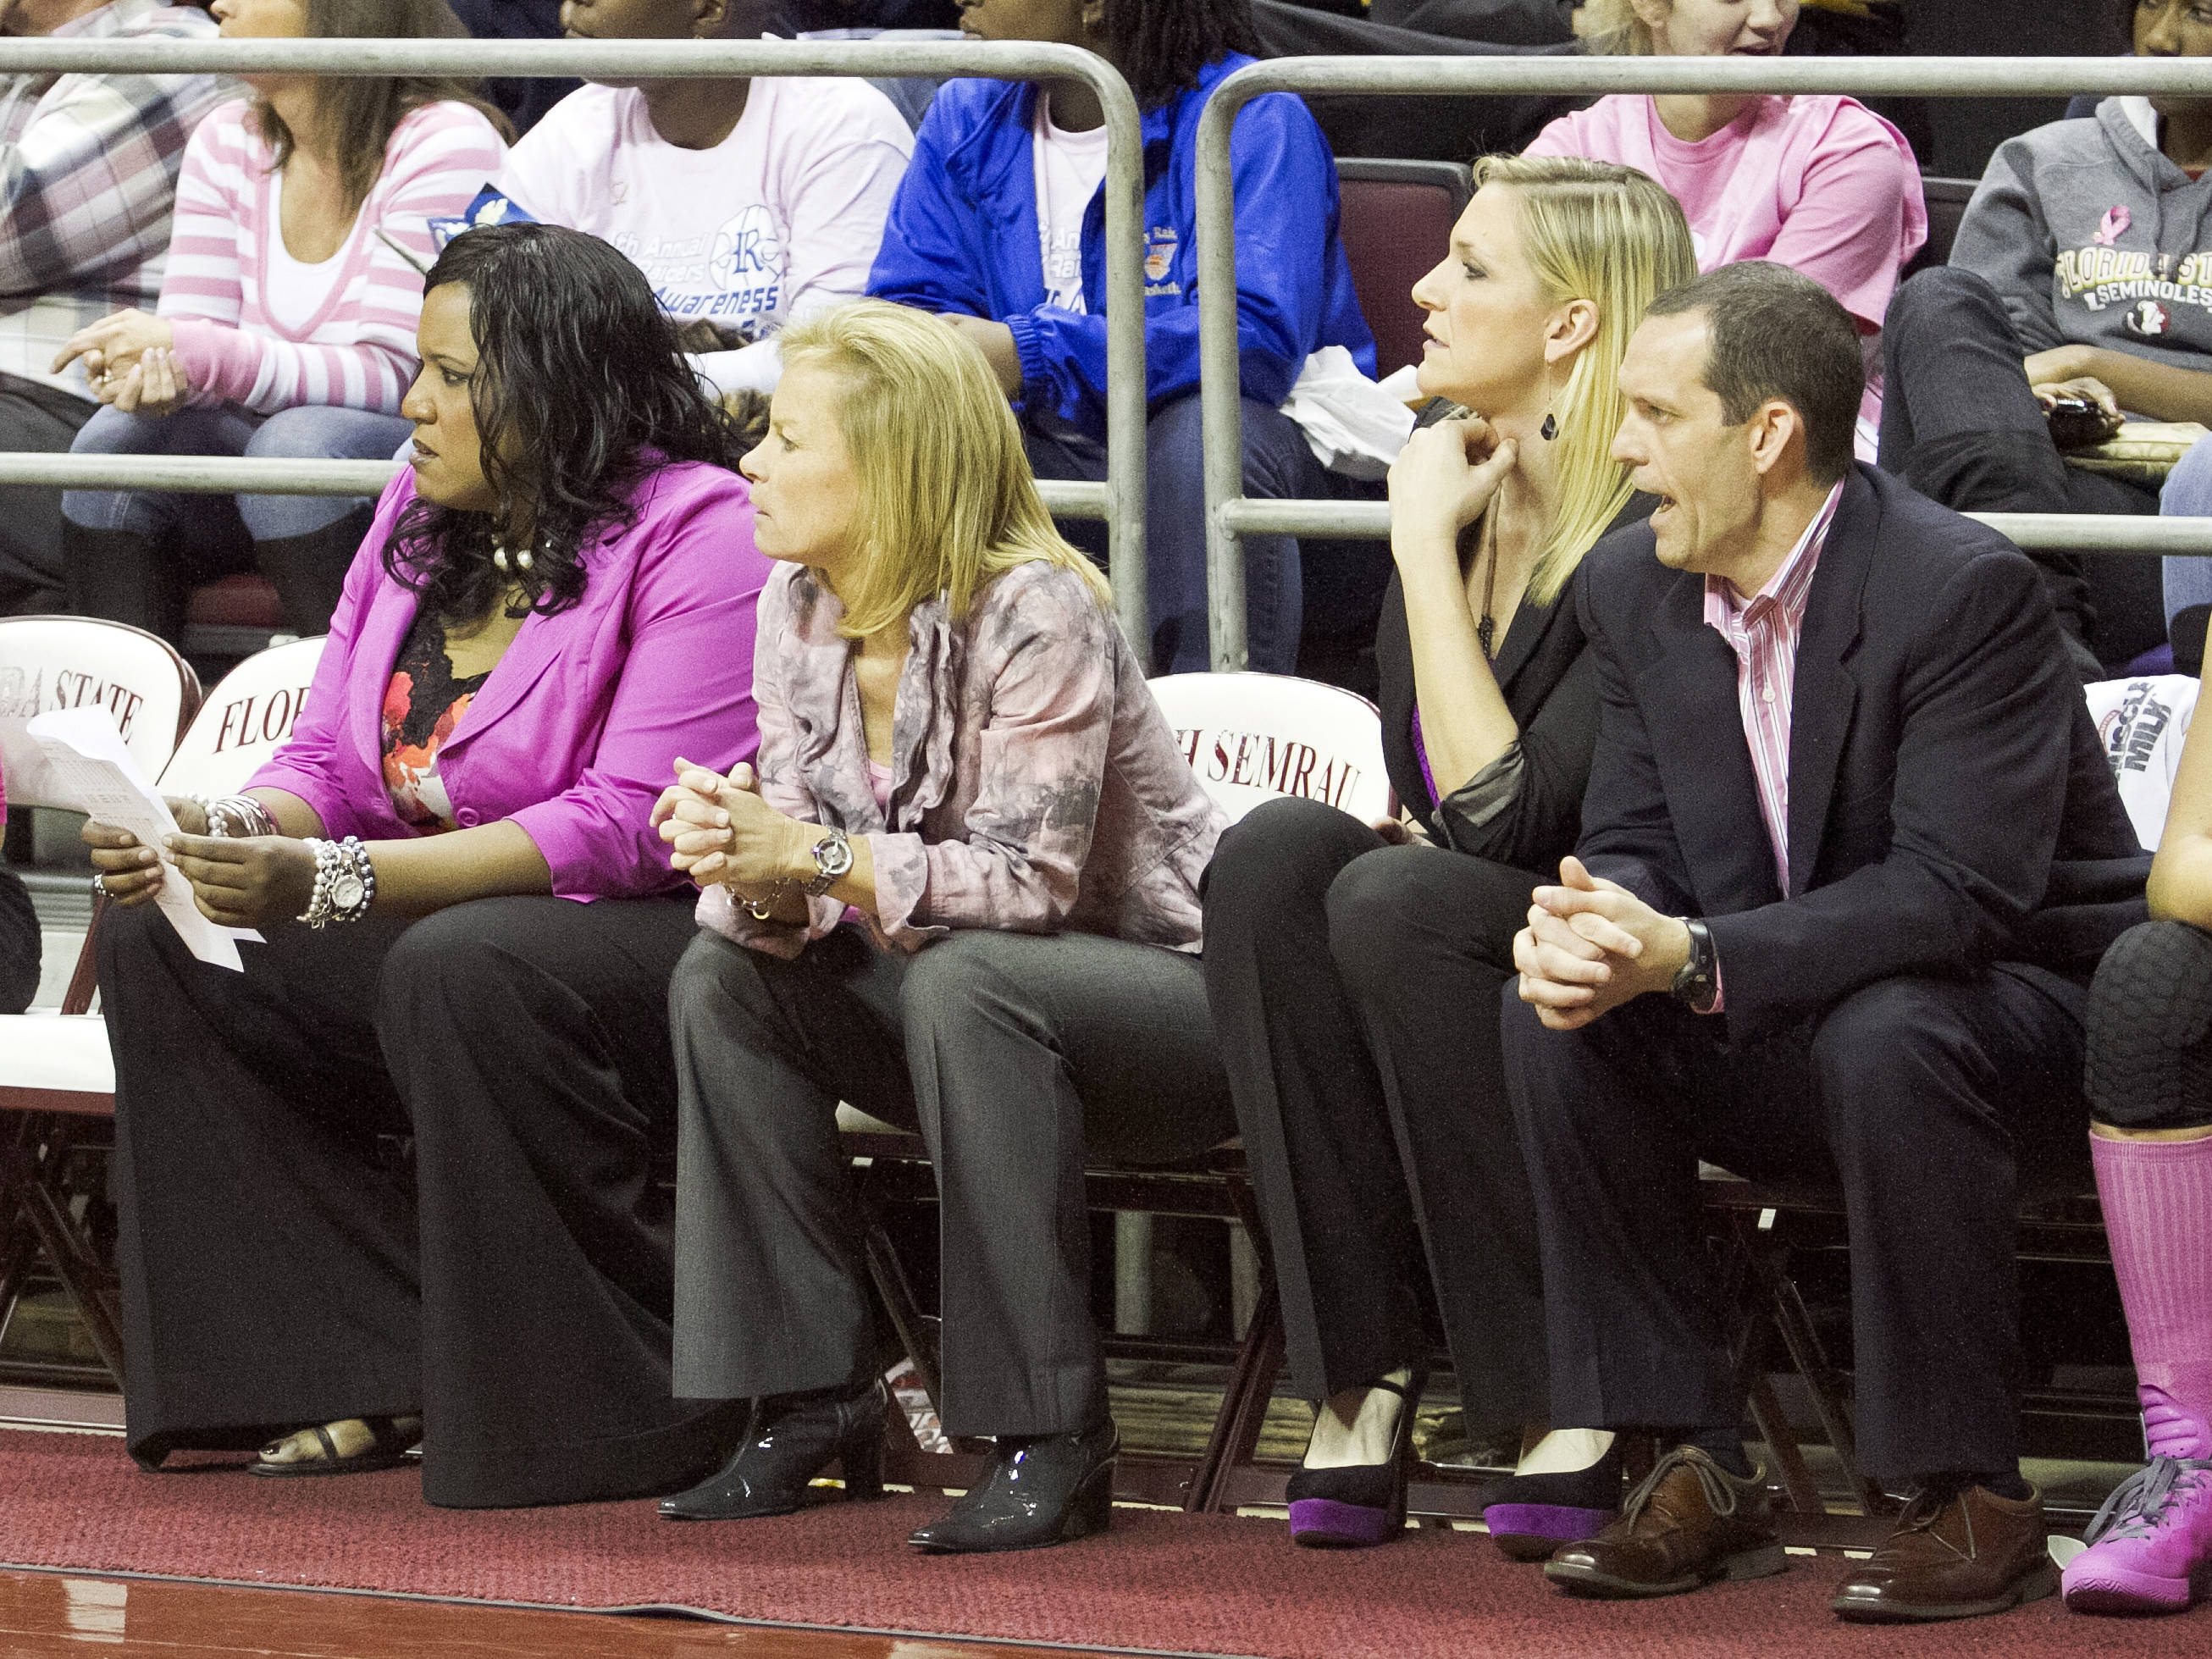 Head Coach Sue Semrau, Assistant coaches Angie Johnson, Brooke Wyckoff and Lance White, FSU vs Duke  02/12/2012